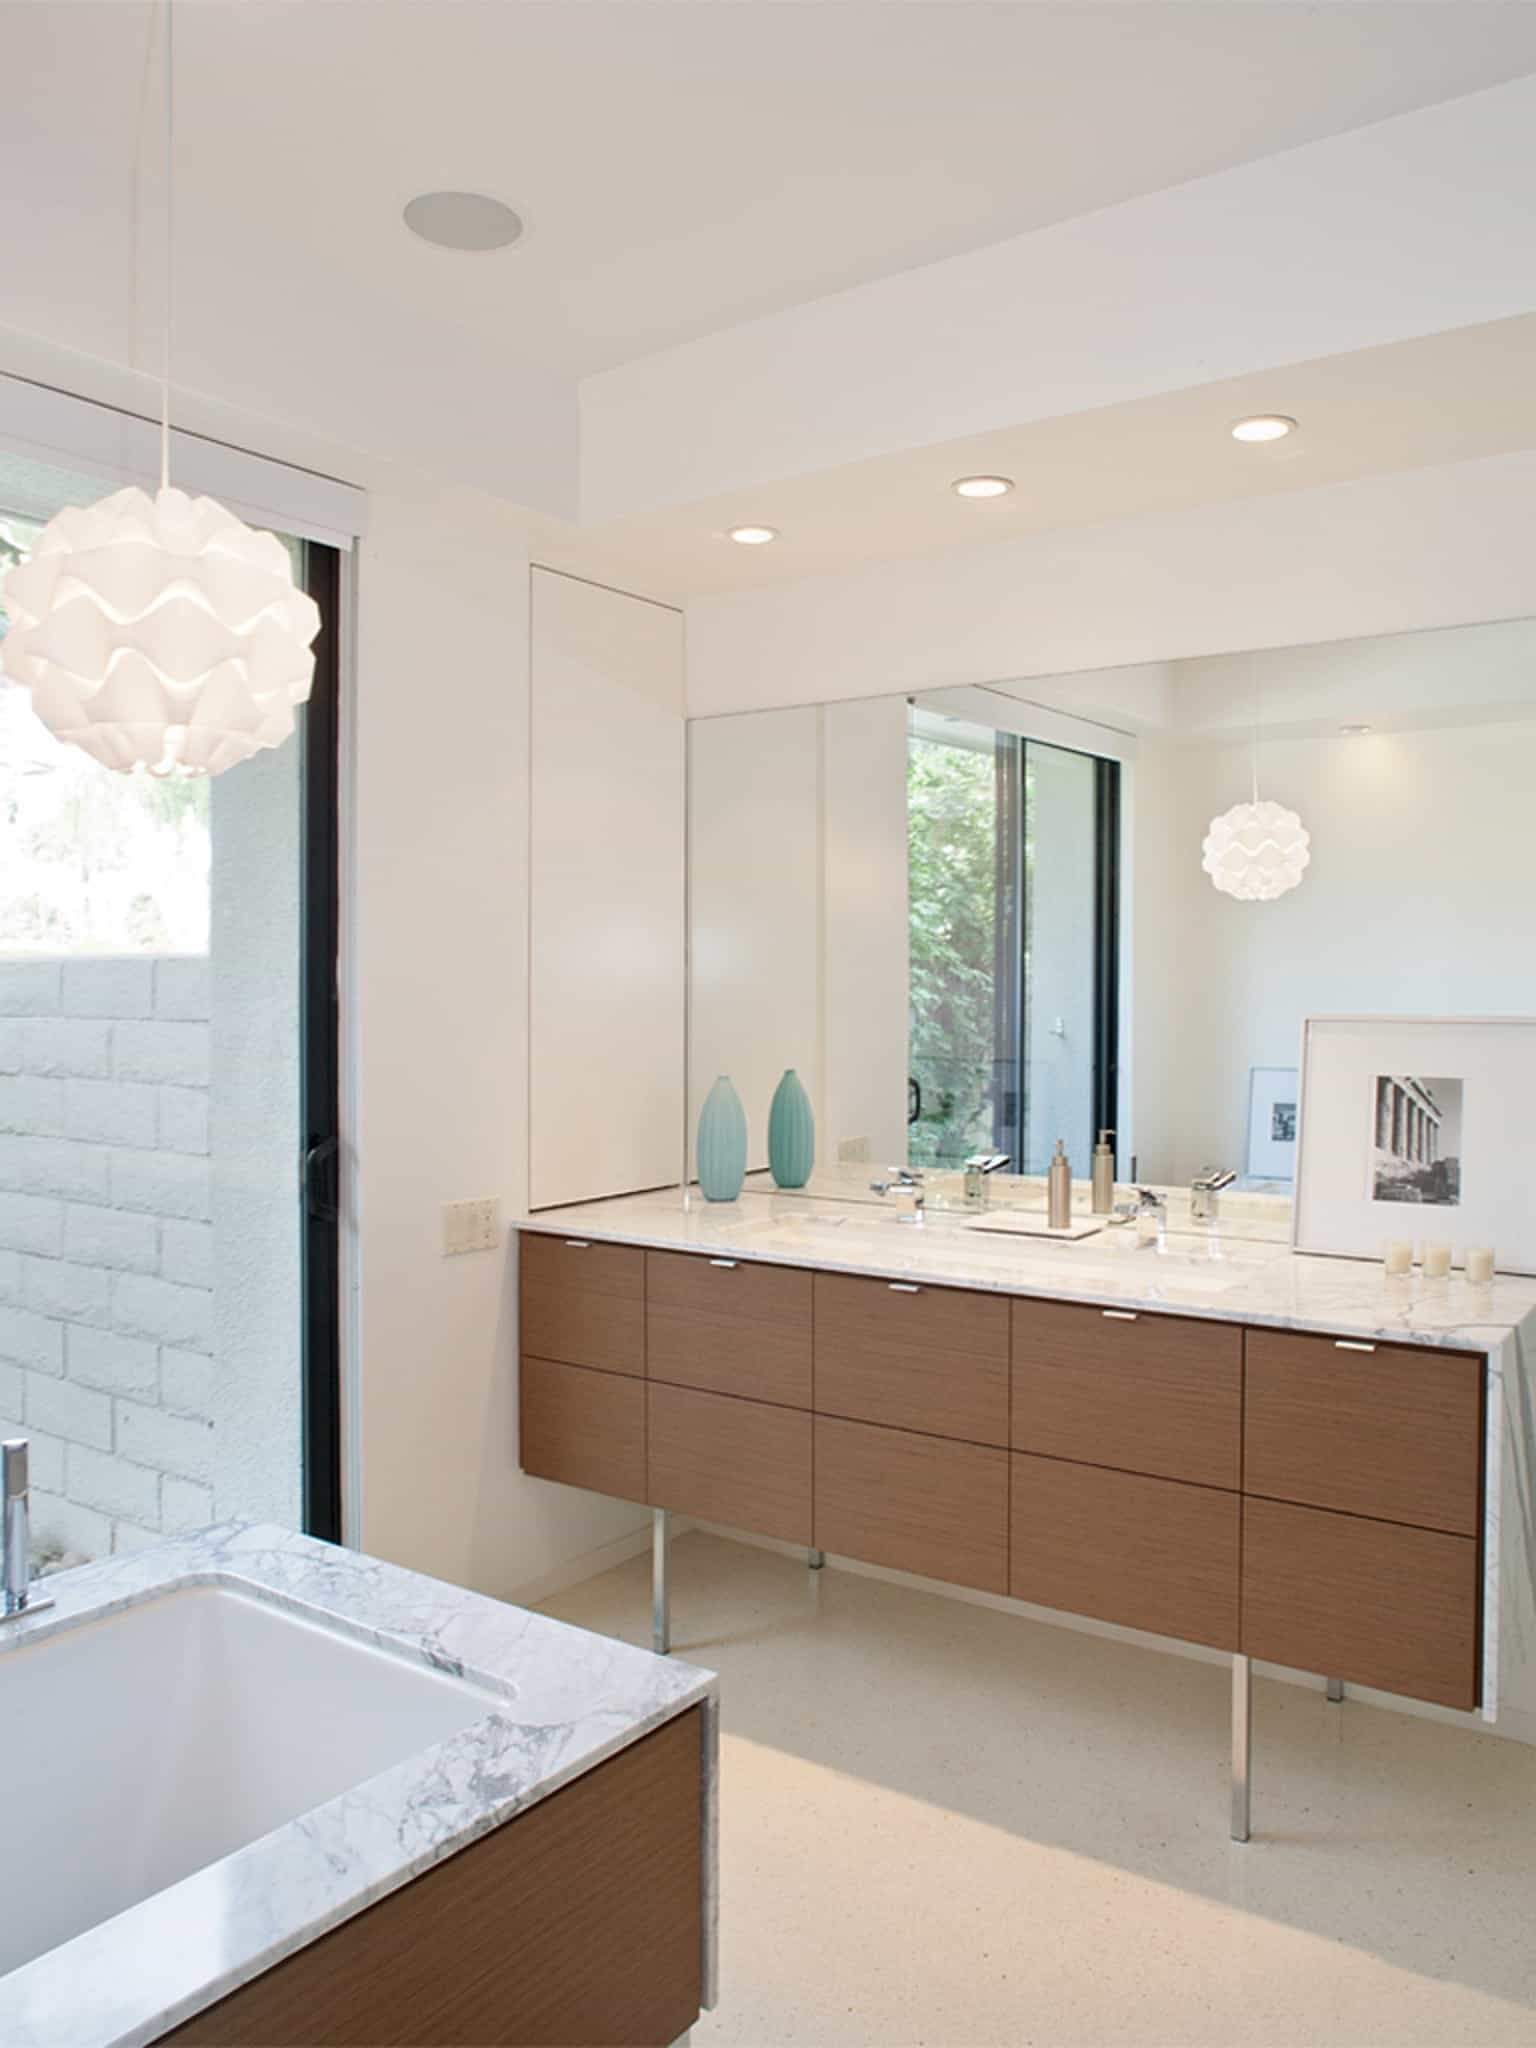 Midcentury Modern Feel Bathroom Design For (View 5 of 29)